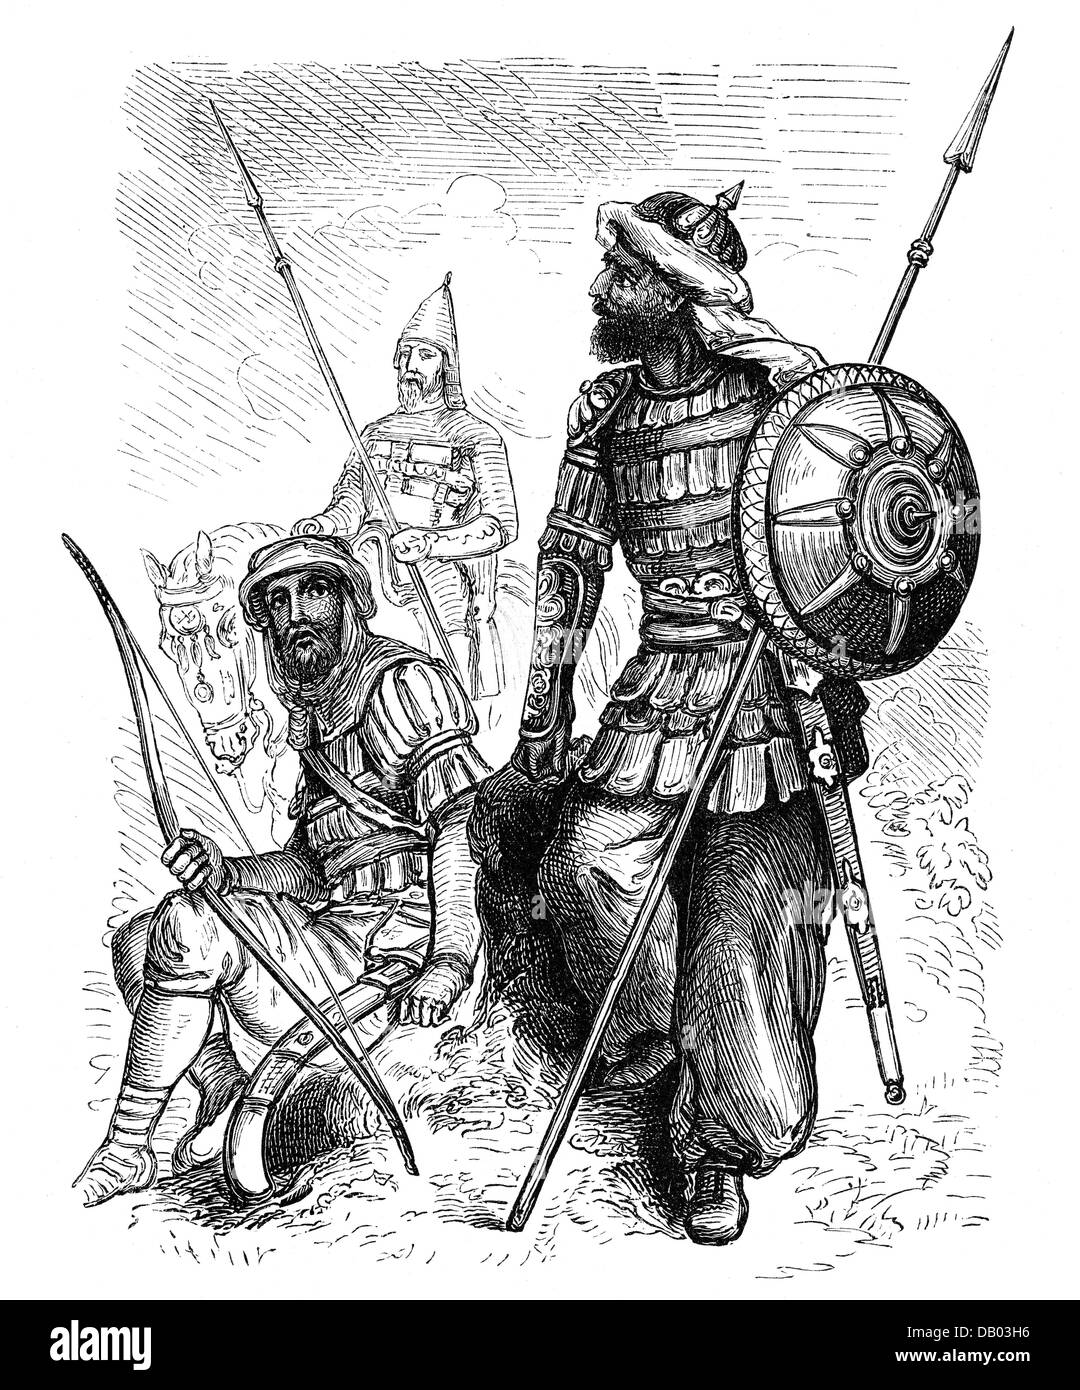 military, Middle Ages, Saracen warriors, wood engraving, 19th century, Saracens, Saracen, fighter, soldier, soldiers, - Stock Image